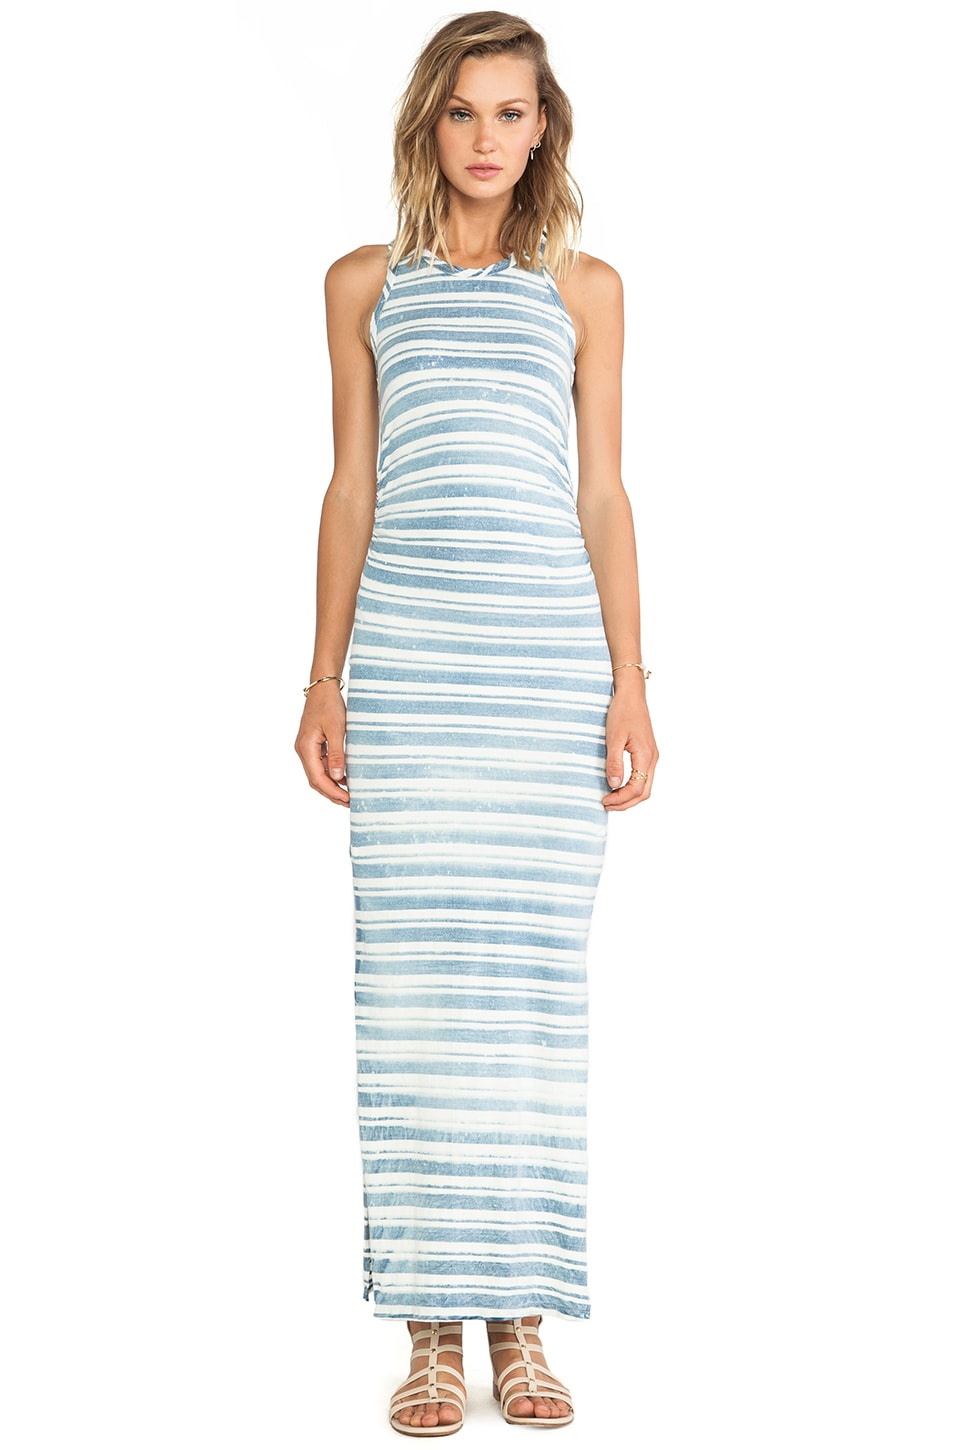 Kain Santa Monica Dress in Vintage Wash Indigo Stripe